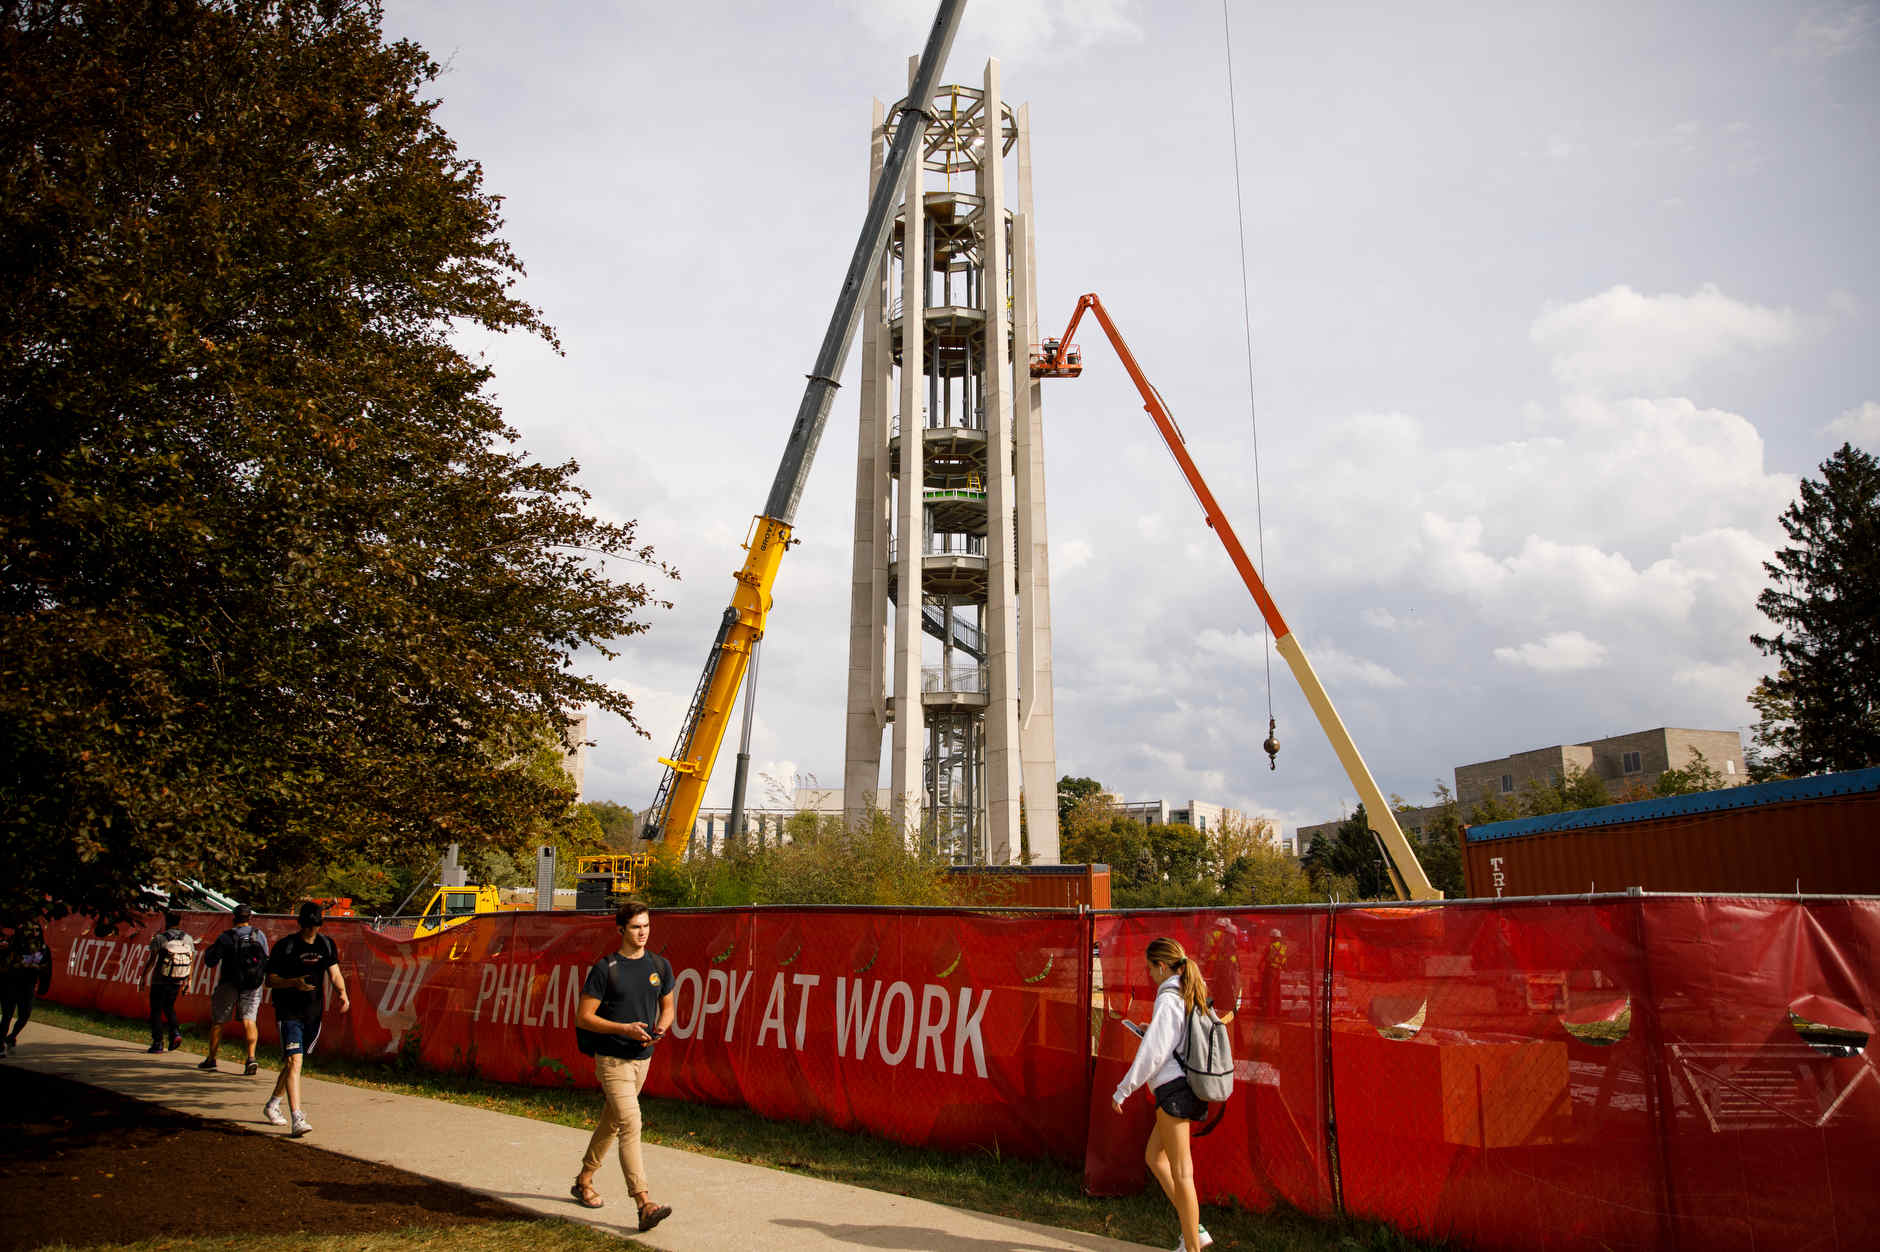 Construction continues on the Arthur R. Metz Bicentennial Grand Carillon in the Arboretum at IU Bloomington on Thursday, Oct. 10, 2019. (James Brosher/Indiana University)